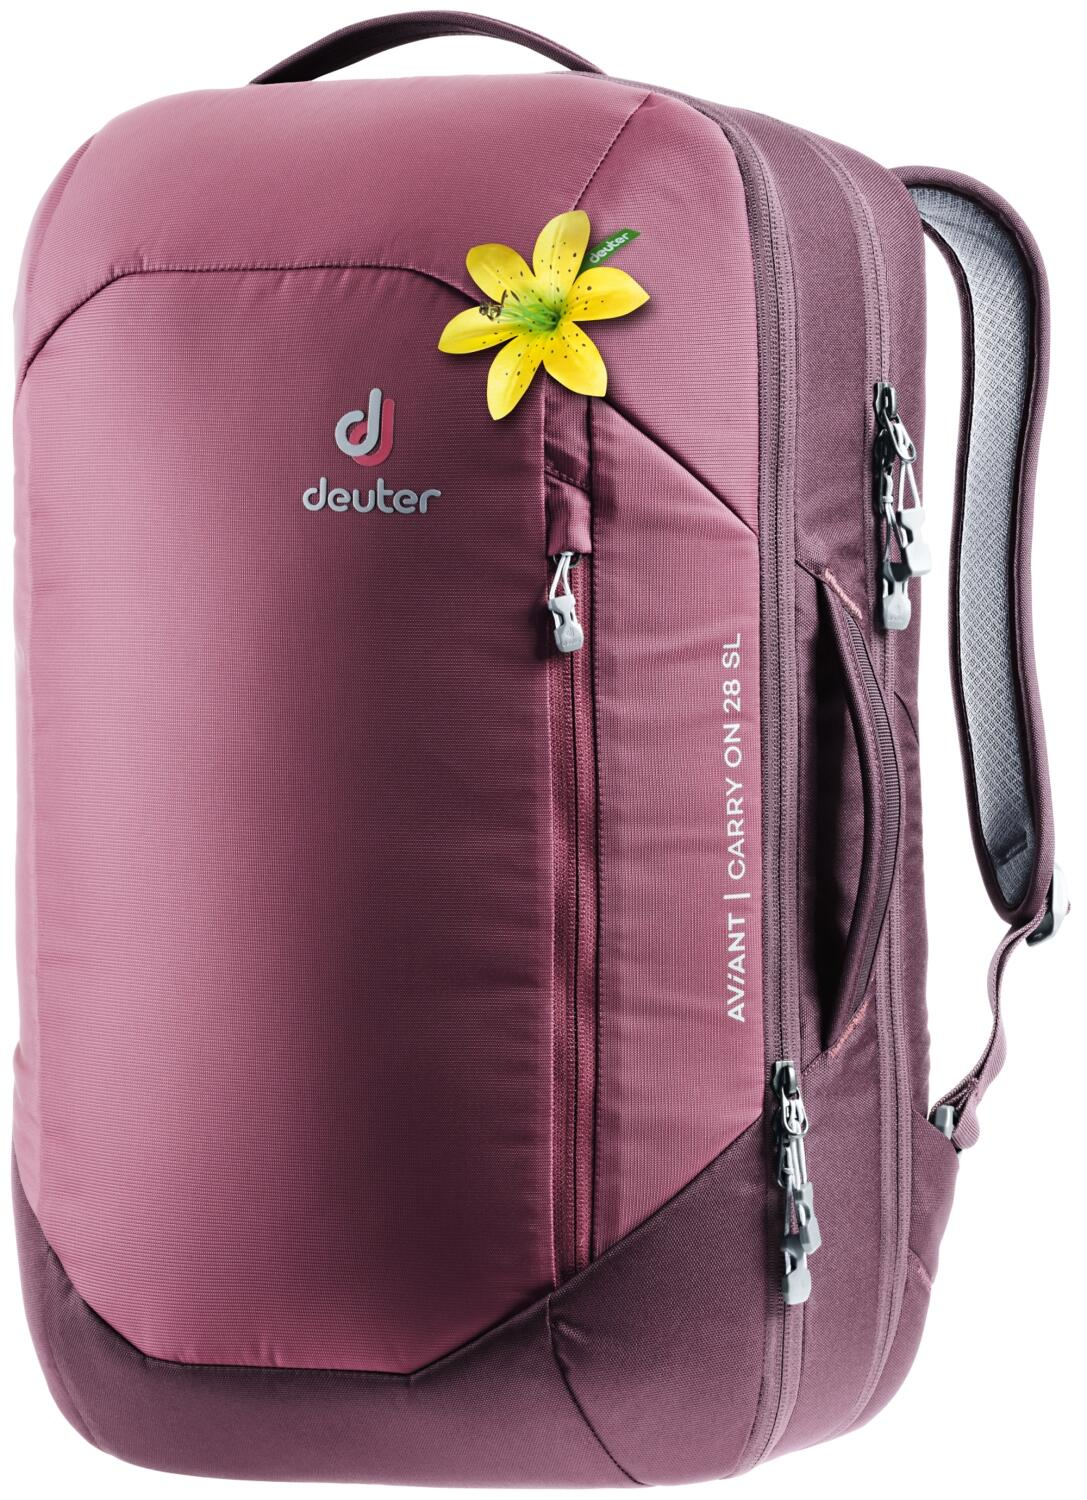 Deuter Aviant Carry On 28 SL Rucksack